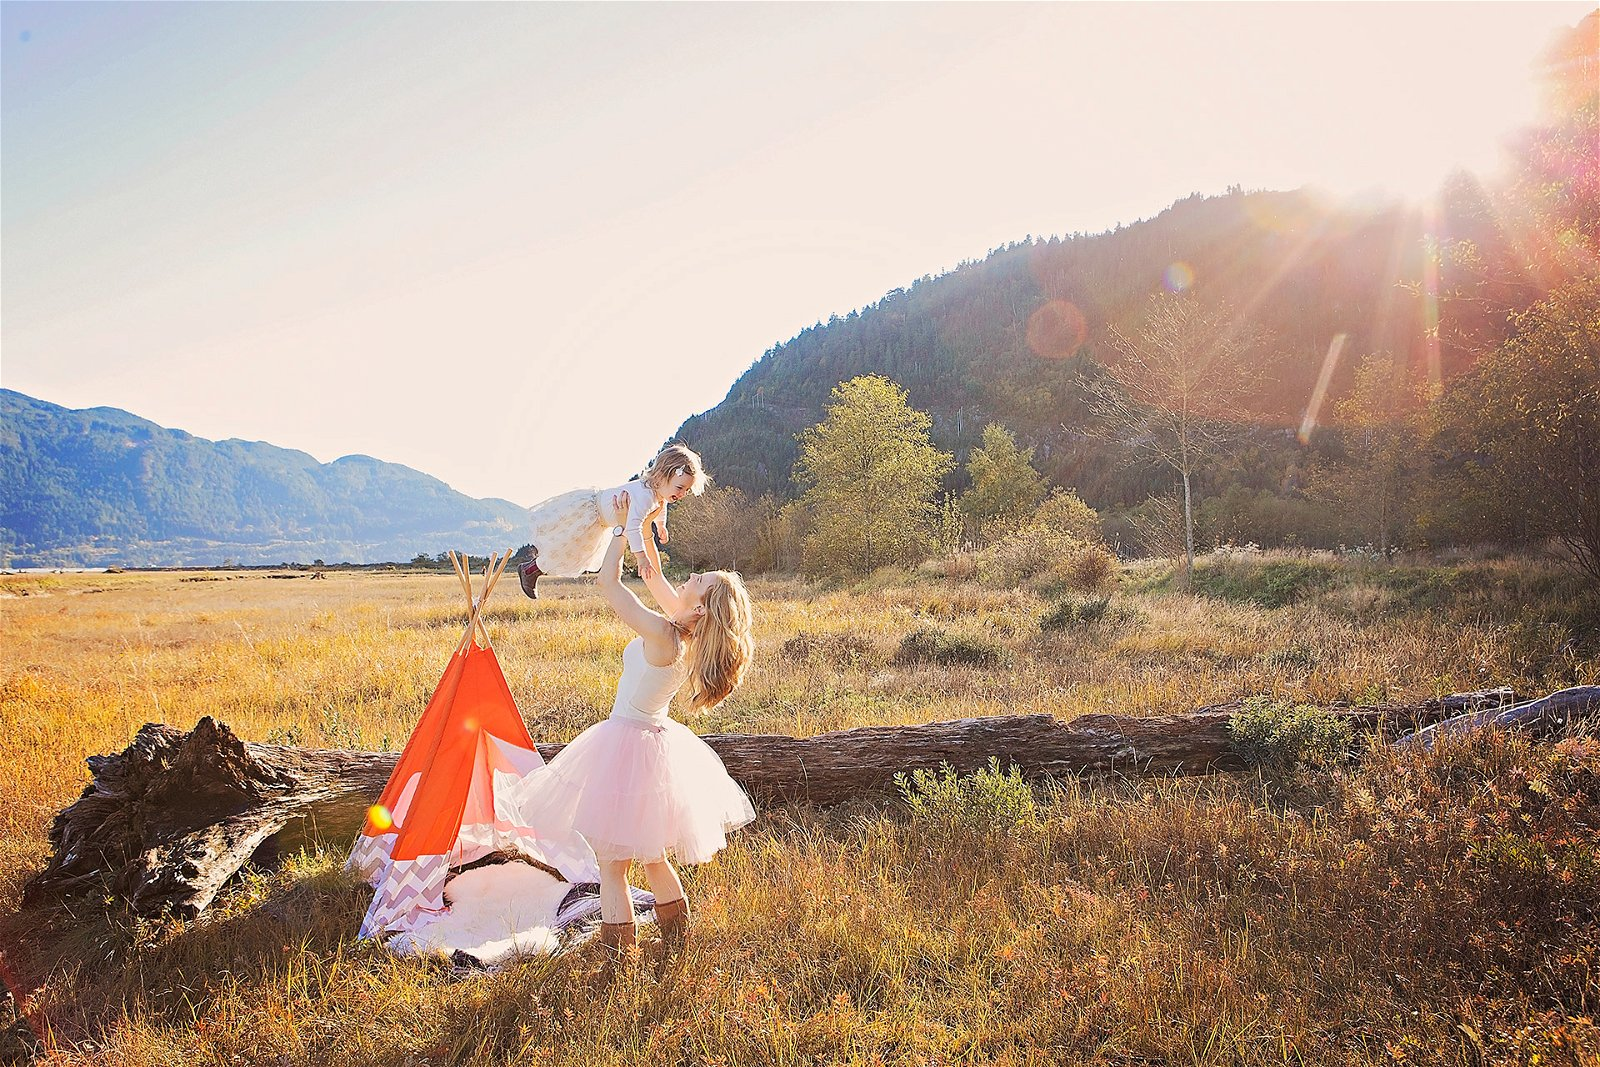 Squamish Family Photographer Gadbois Photography featured